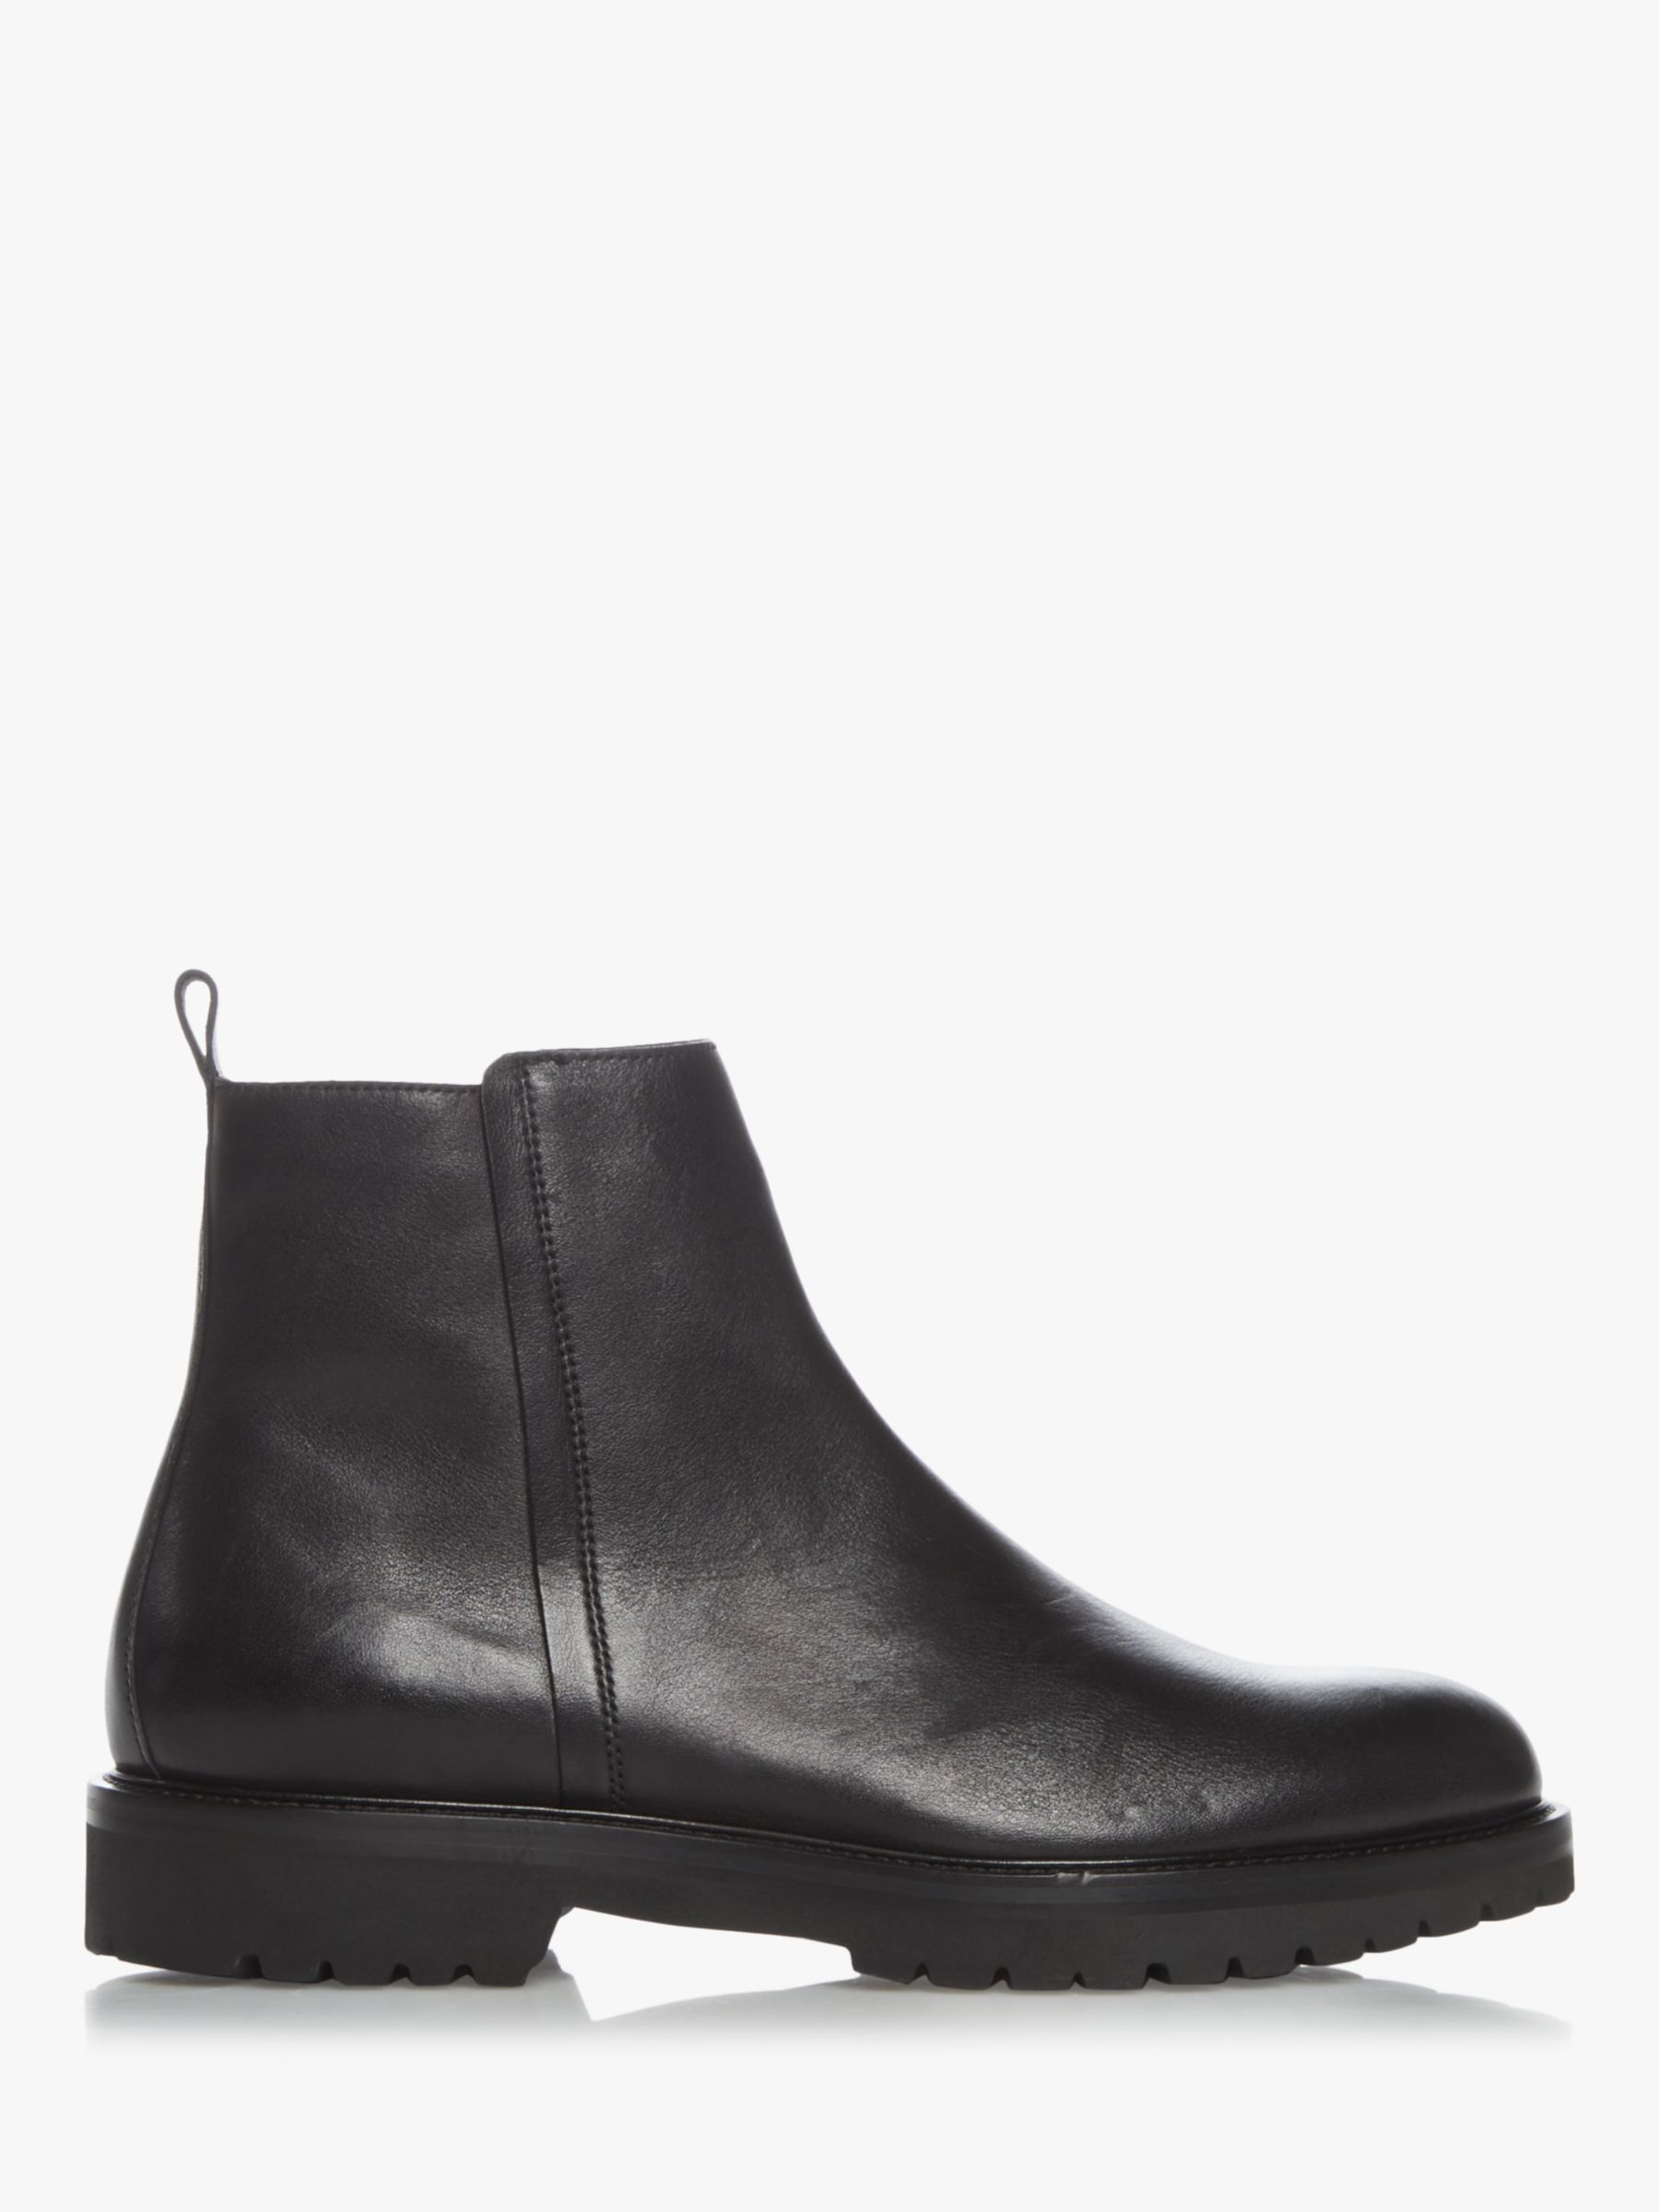 Dune Crate Leather Heavy Tread Boots, Black